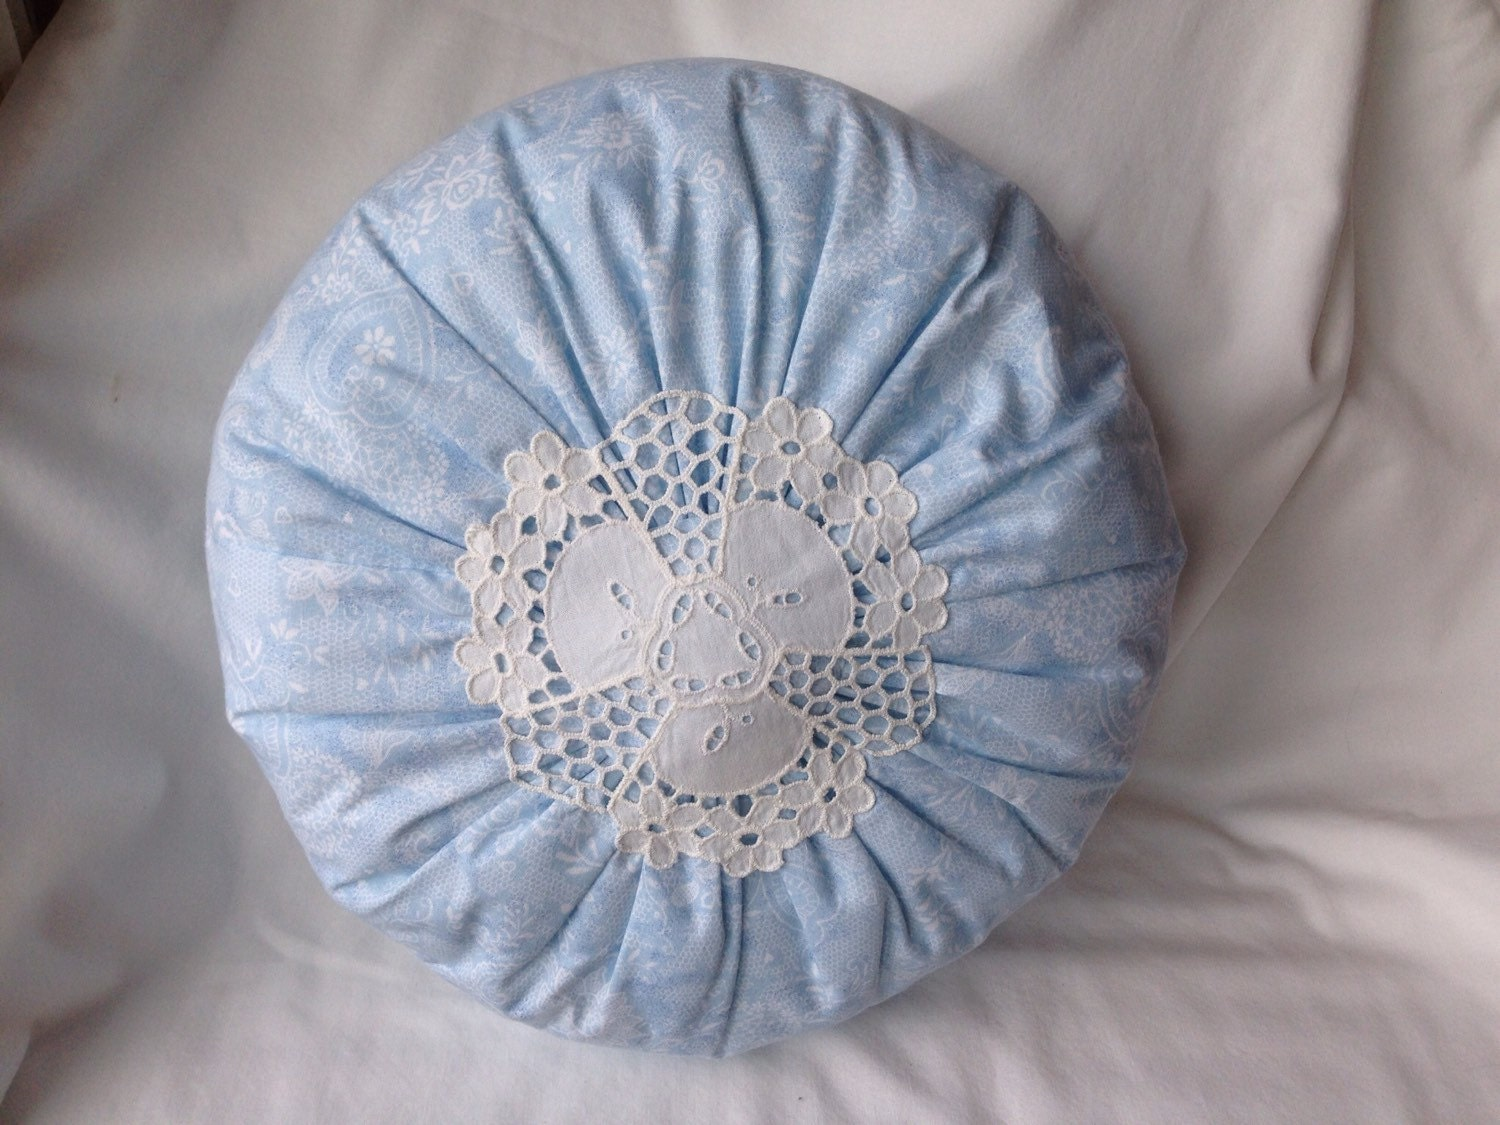 Decorative Pillows Round : Round Doily Pillow Decorative Pillow Shabby Chic by NeedleLove2